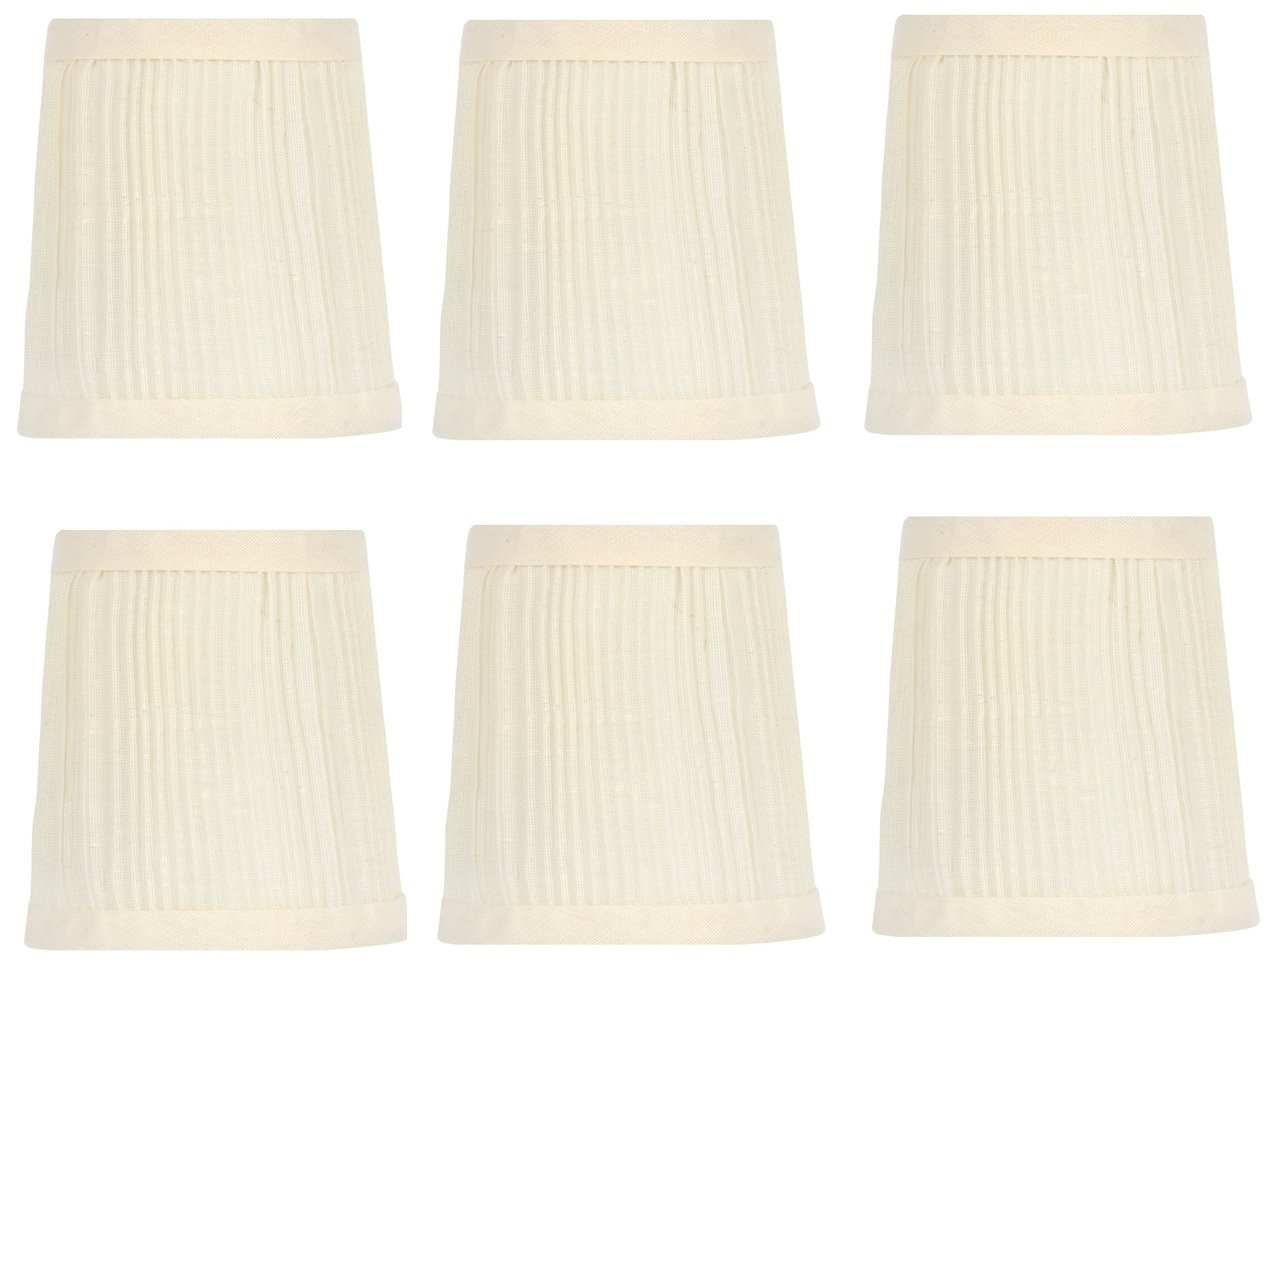 Upgradelights 4 Inch Pleated Retro Drum Chandelier Lamp Shades In Eggshell Set Of Six 3x4x4 Com